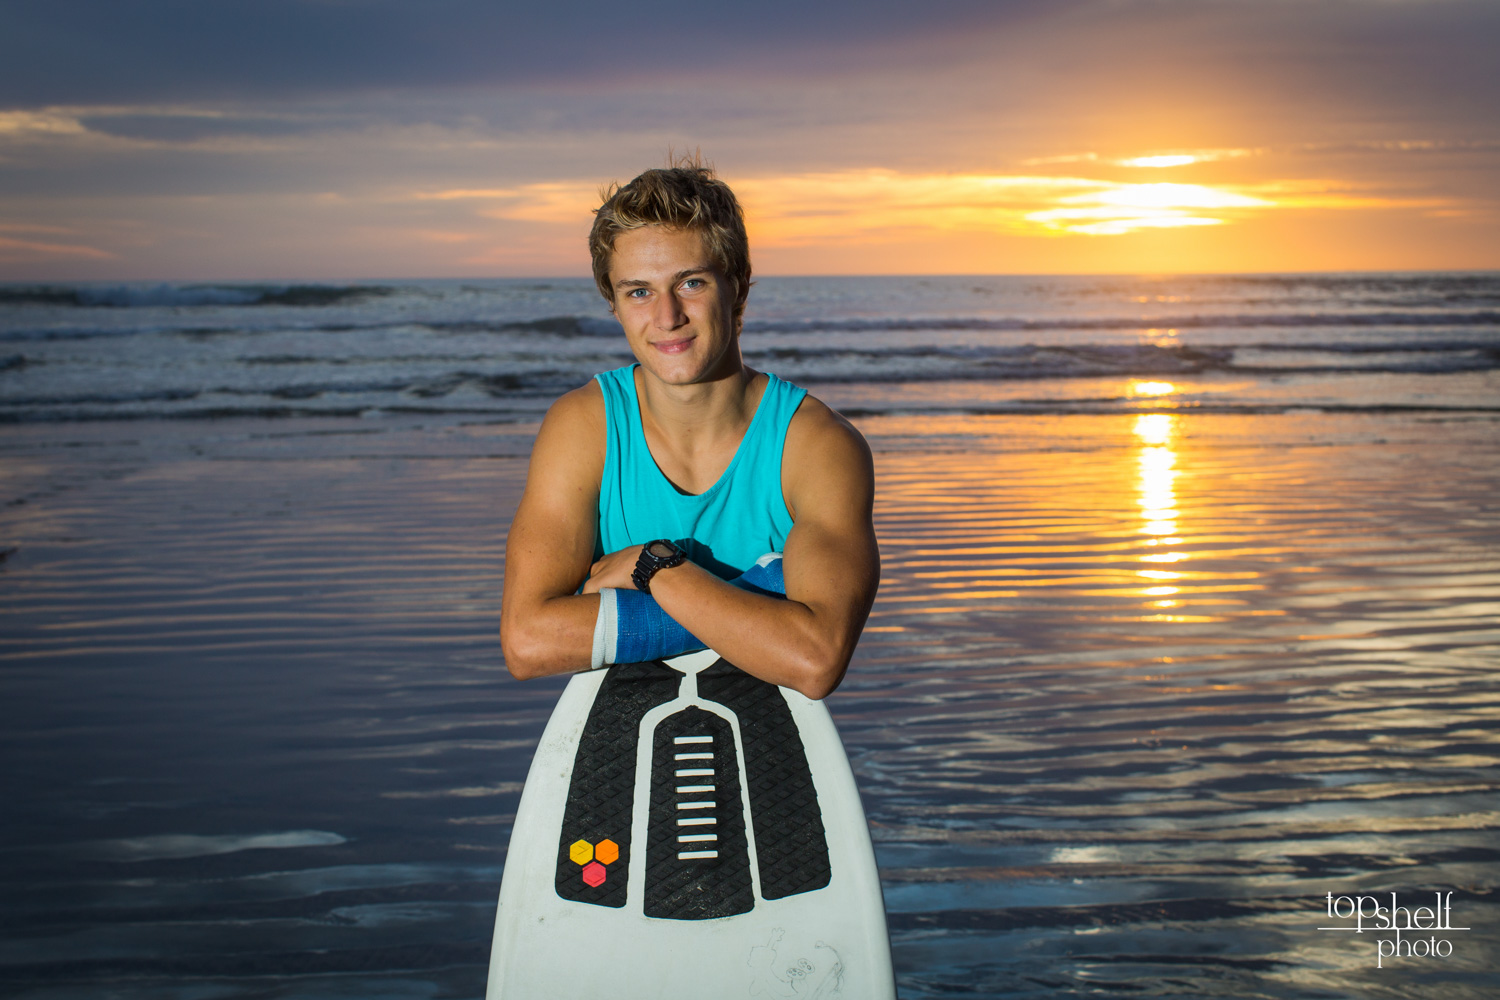 beach-sunset-high-school-senior-portrait-san-diego-top-shelf-photo-1.jpg